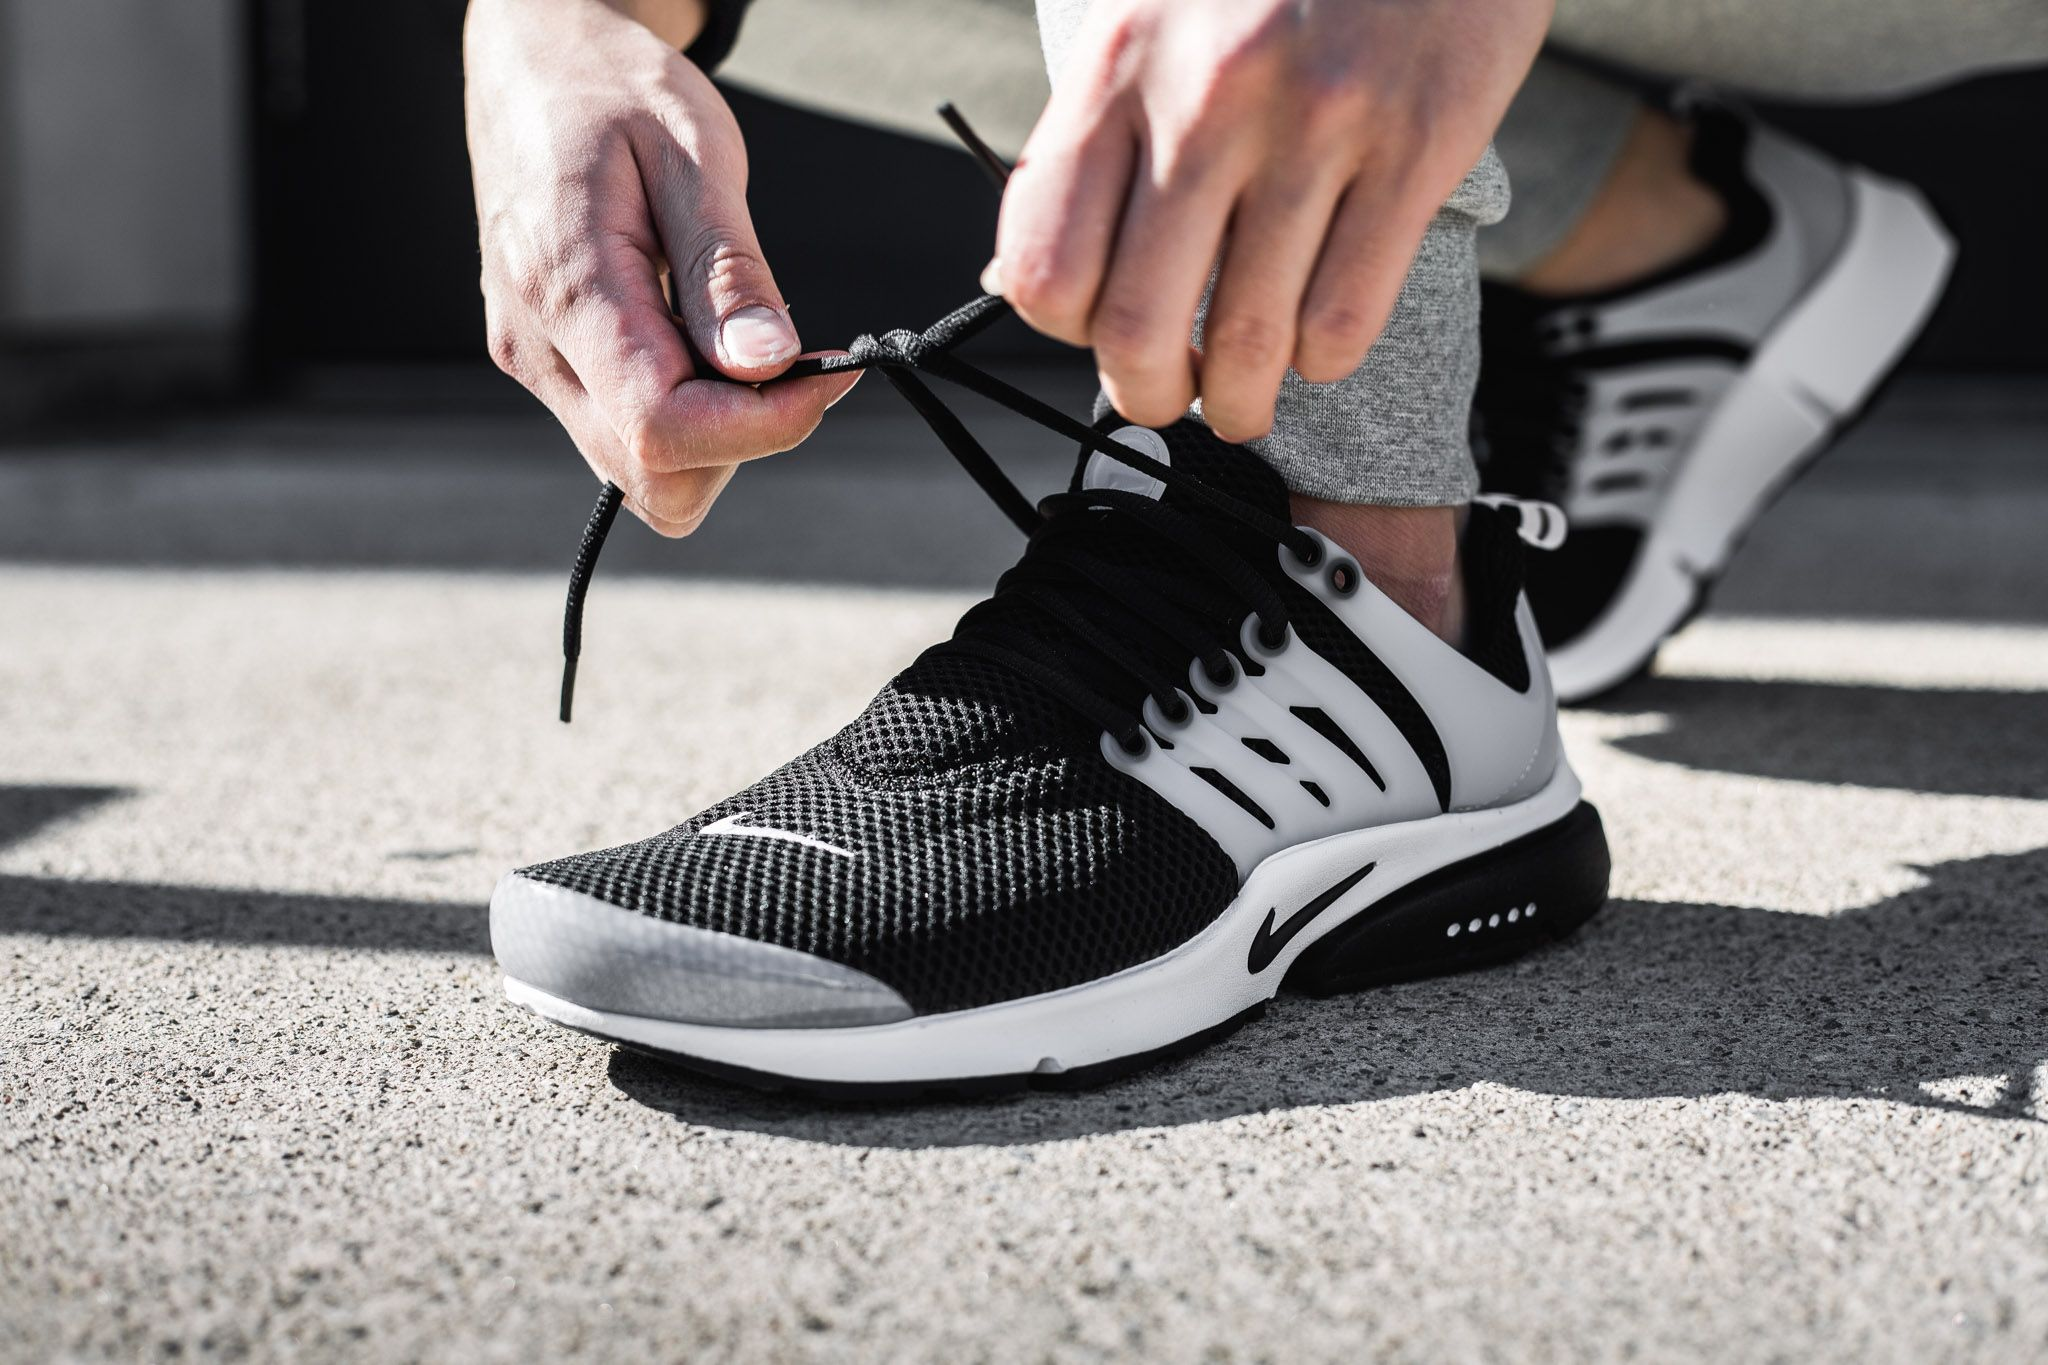 16 years later, the Nike icon has been updated with innovative materials and technological advancements to enhance this classic even further. The Air Presto ...